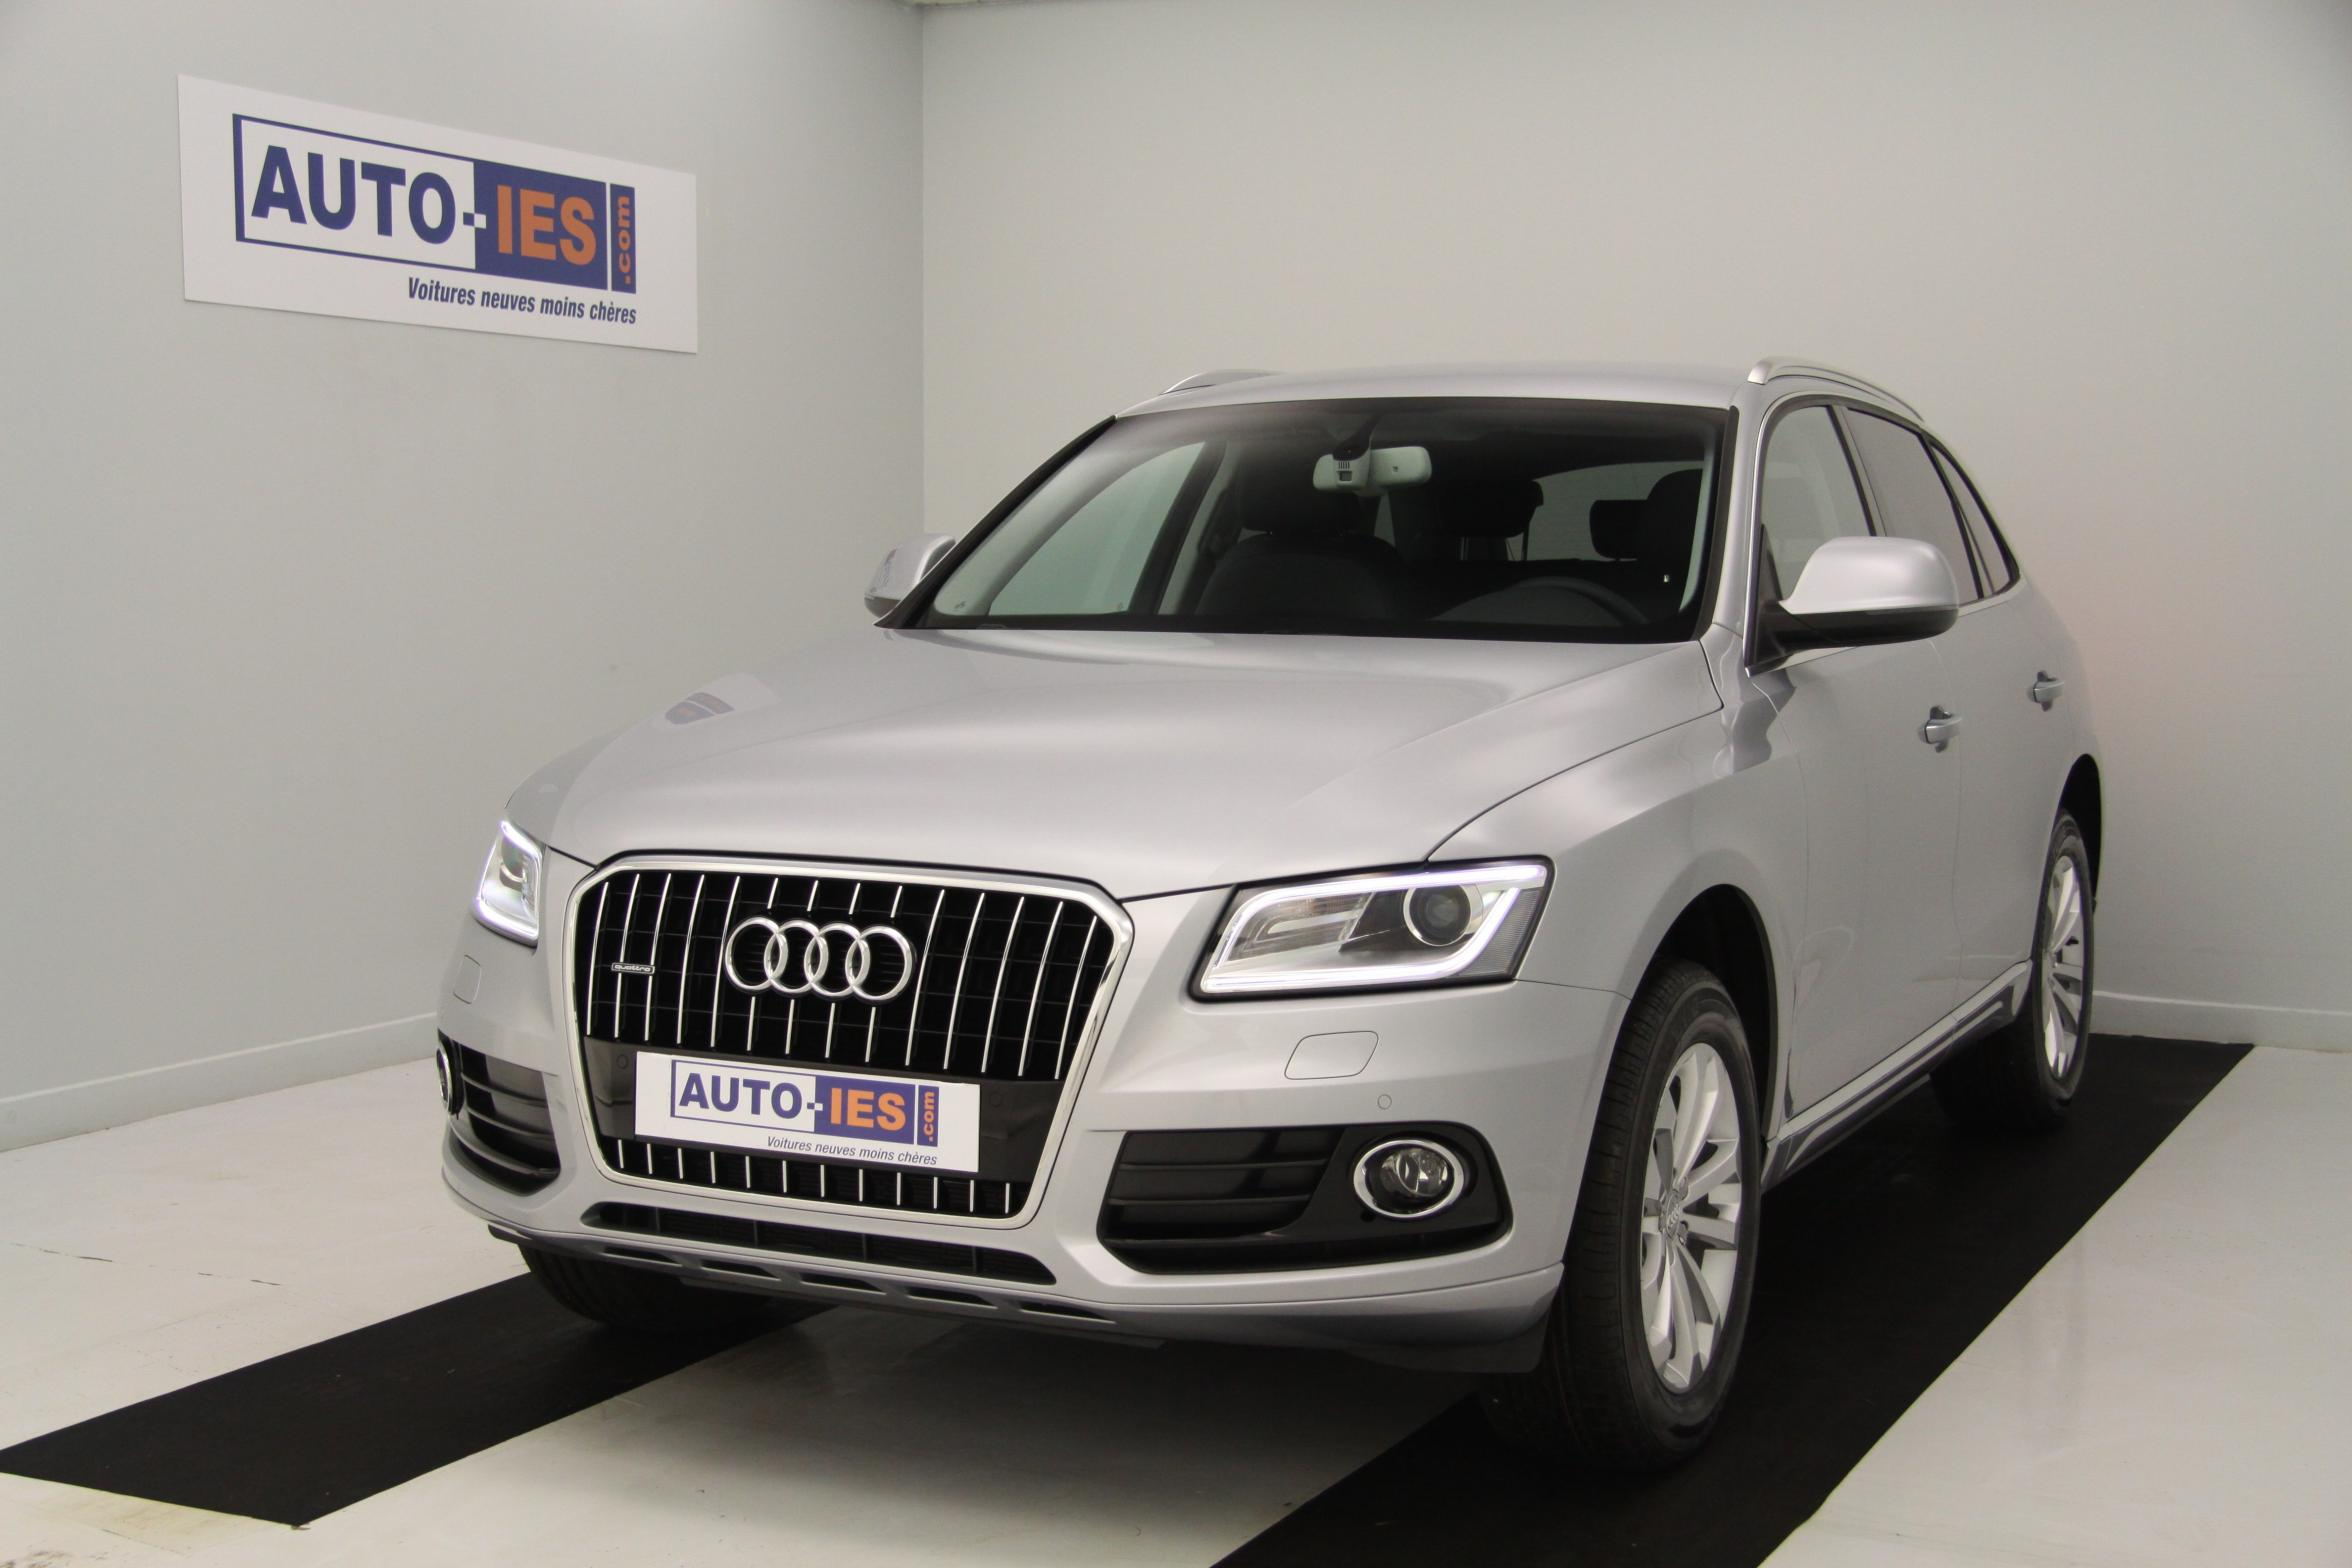 audi q5 2 0 tdi clean diesel 190 quattro ambition luxe s tronic 7 argent fleuret avec options. Black Bedroom Furniture Sets. Home Design Ideas